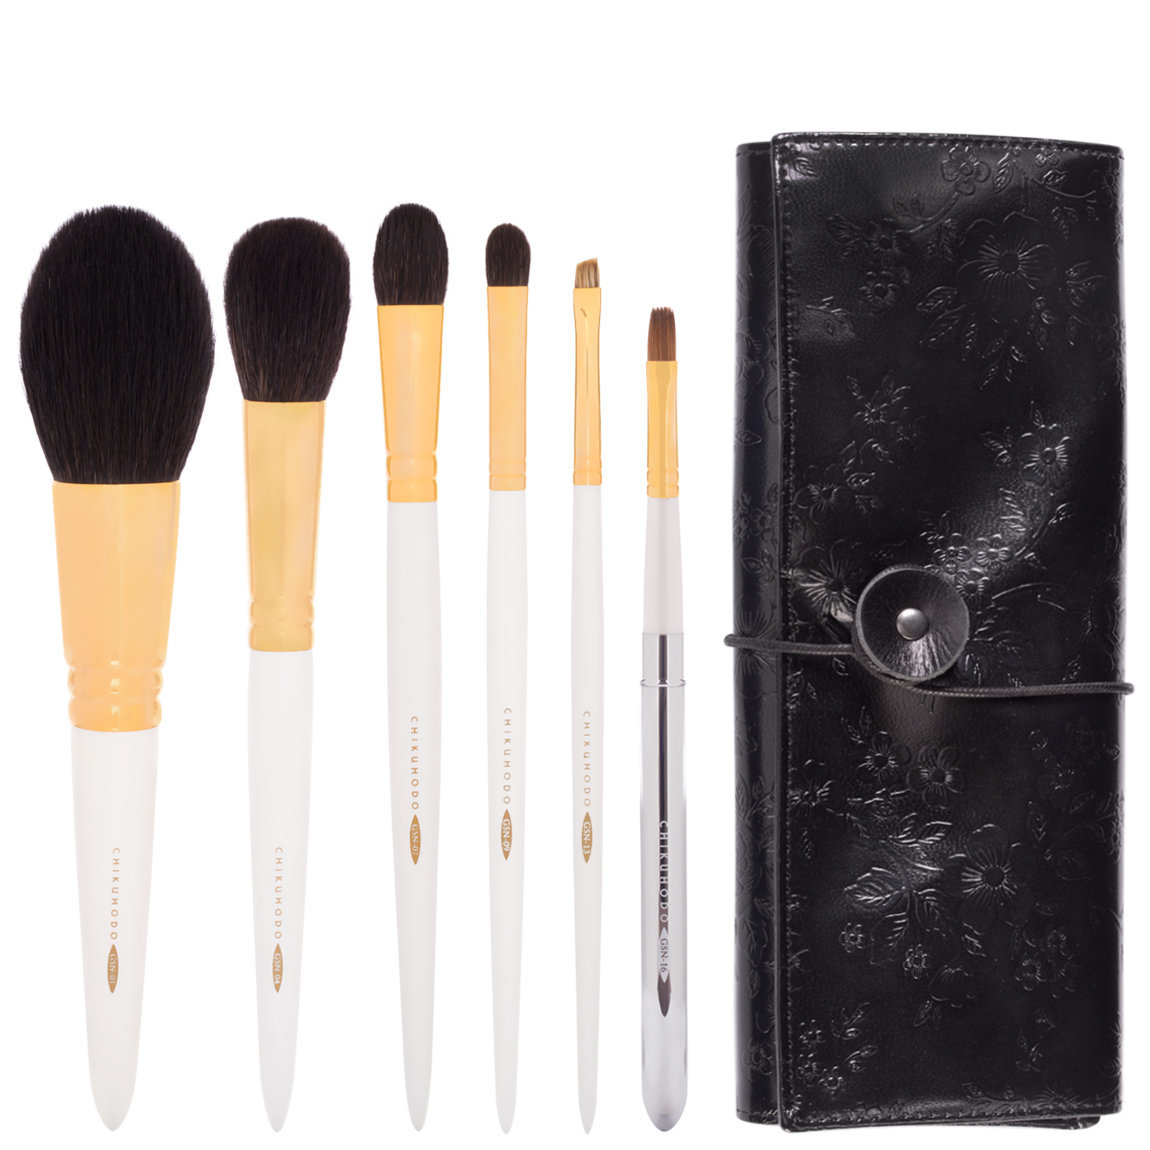 CHIKUHODO GSN Series 6-Piece Brush Set product smear.